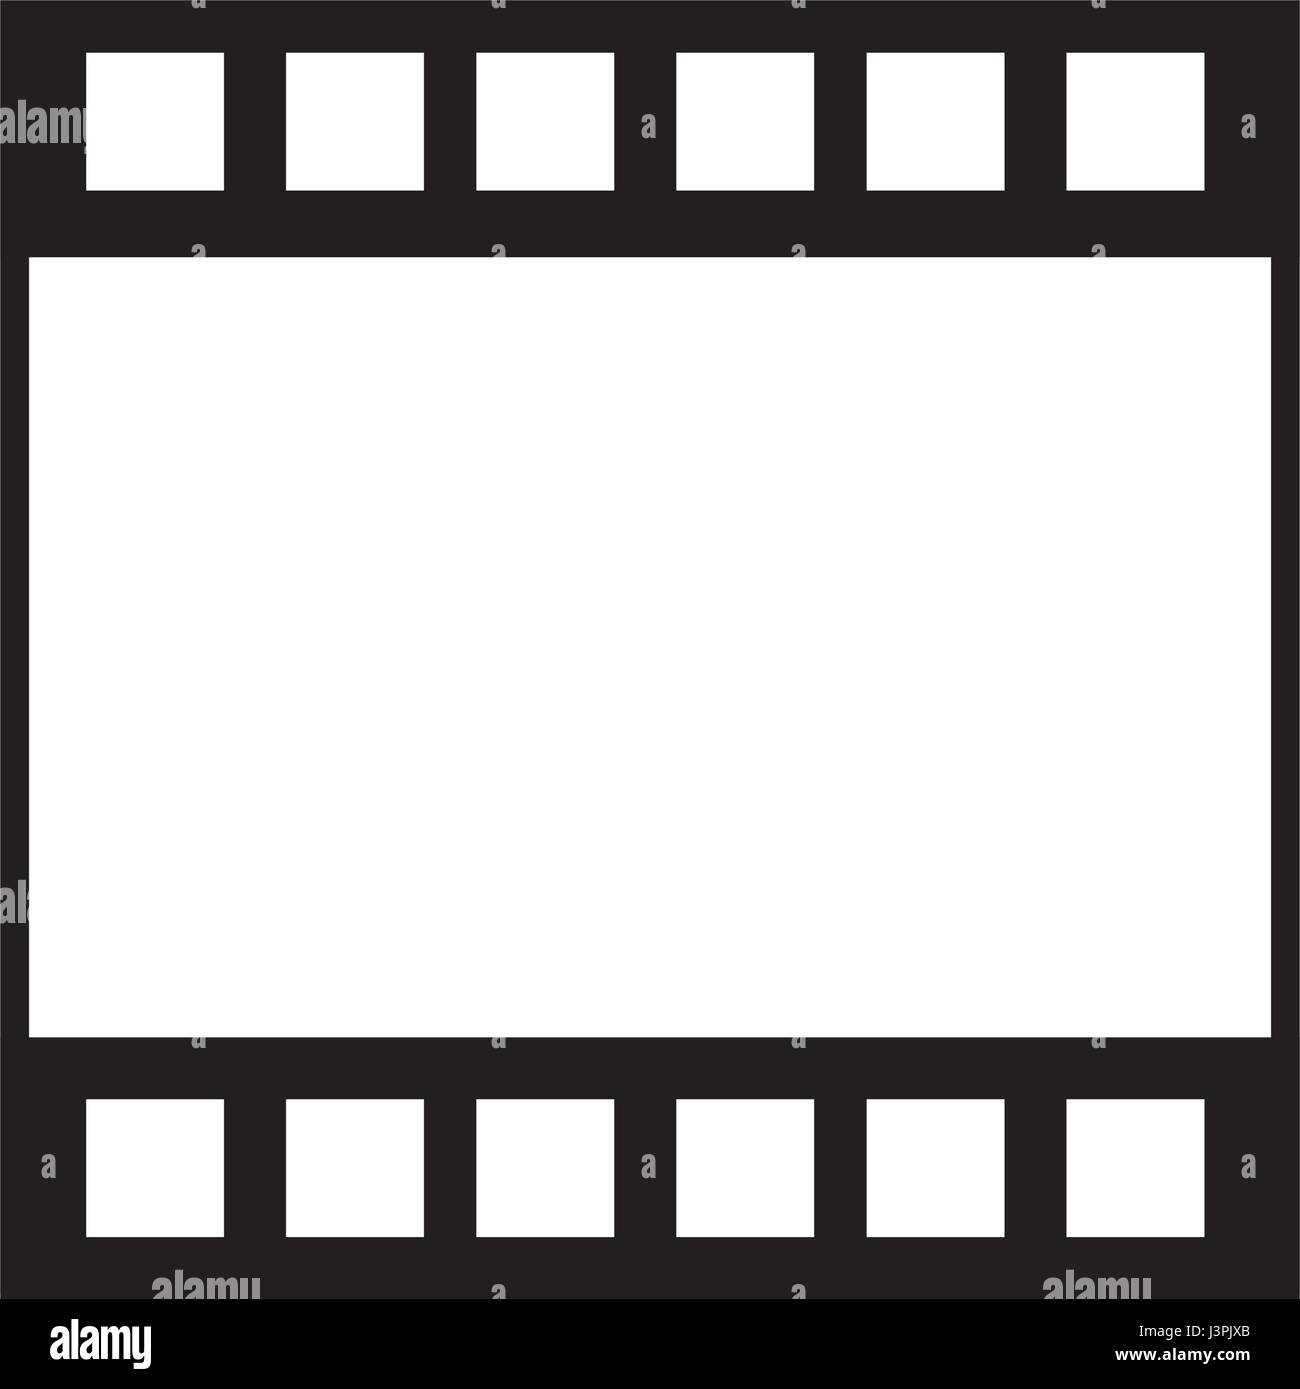 Strip film frame cinema template image stock vector art strip film frame cinema template image jeuxipadfo Image collections